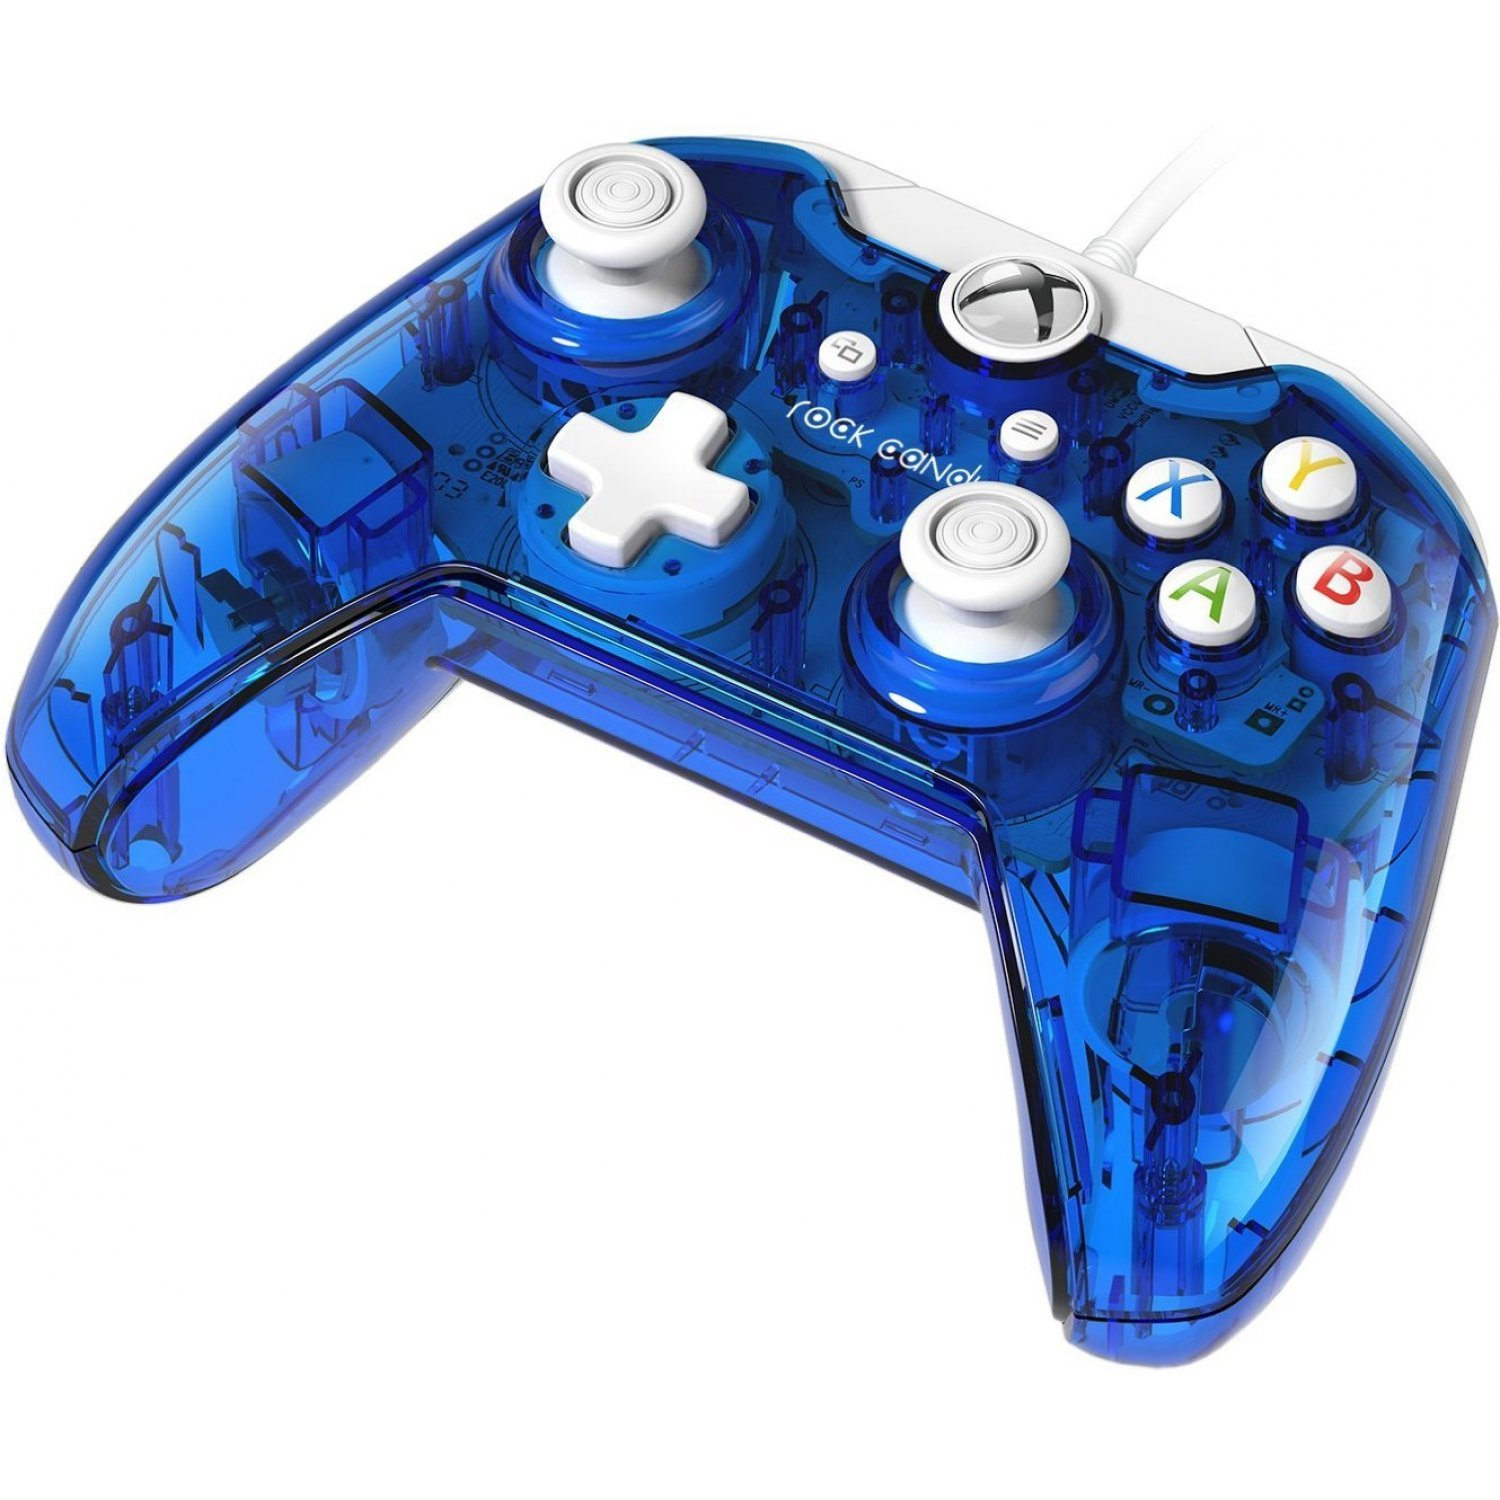 Rock Candy Xbox One Wired Controller (Blueberry Boom)